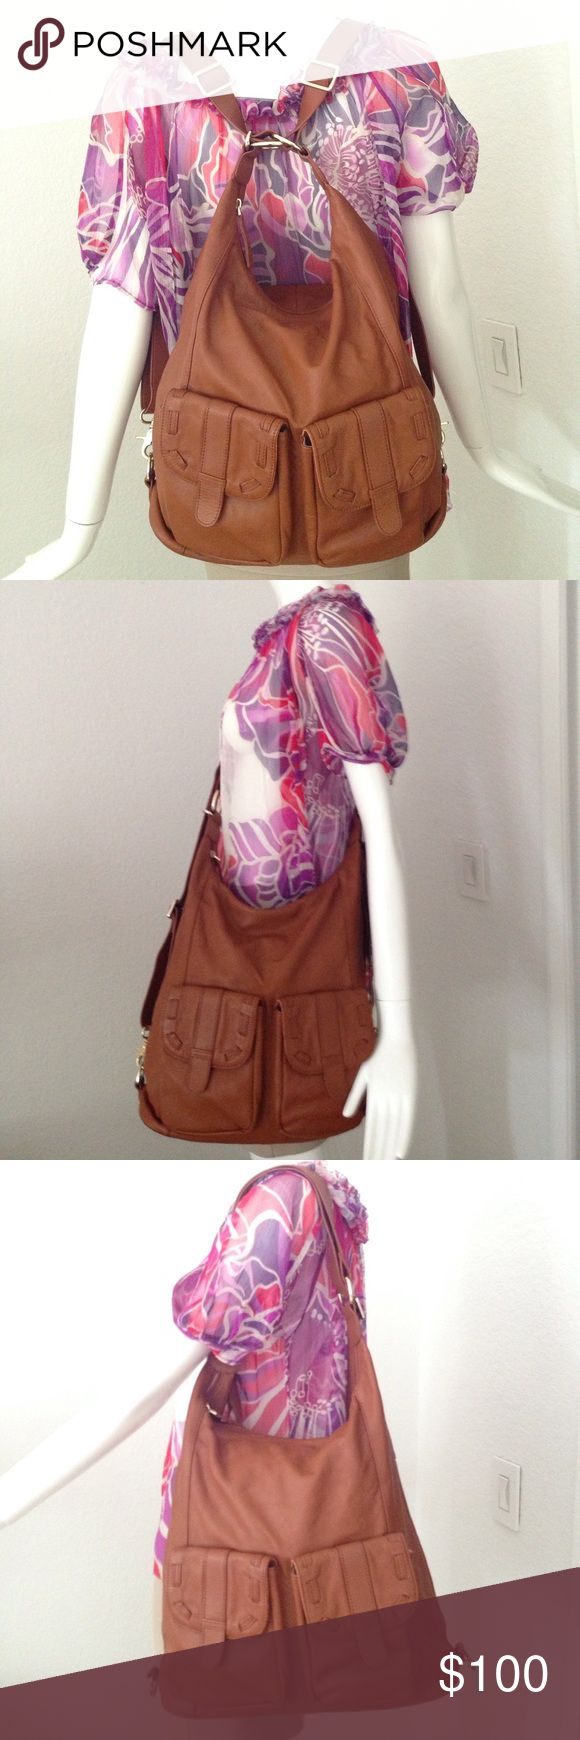 """Epiphanie leather bag 13.5""""x4.5""""x13.75"""".       3-in-1 Bag from Epiphanie can be worn over your shoulder, cross-body, or as a backpack without removing any straps.  Please see picture for condition. No major defects.     Has marks on hard wear and top back as Pictured.     No Trade!! Epiphanie Bags"""